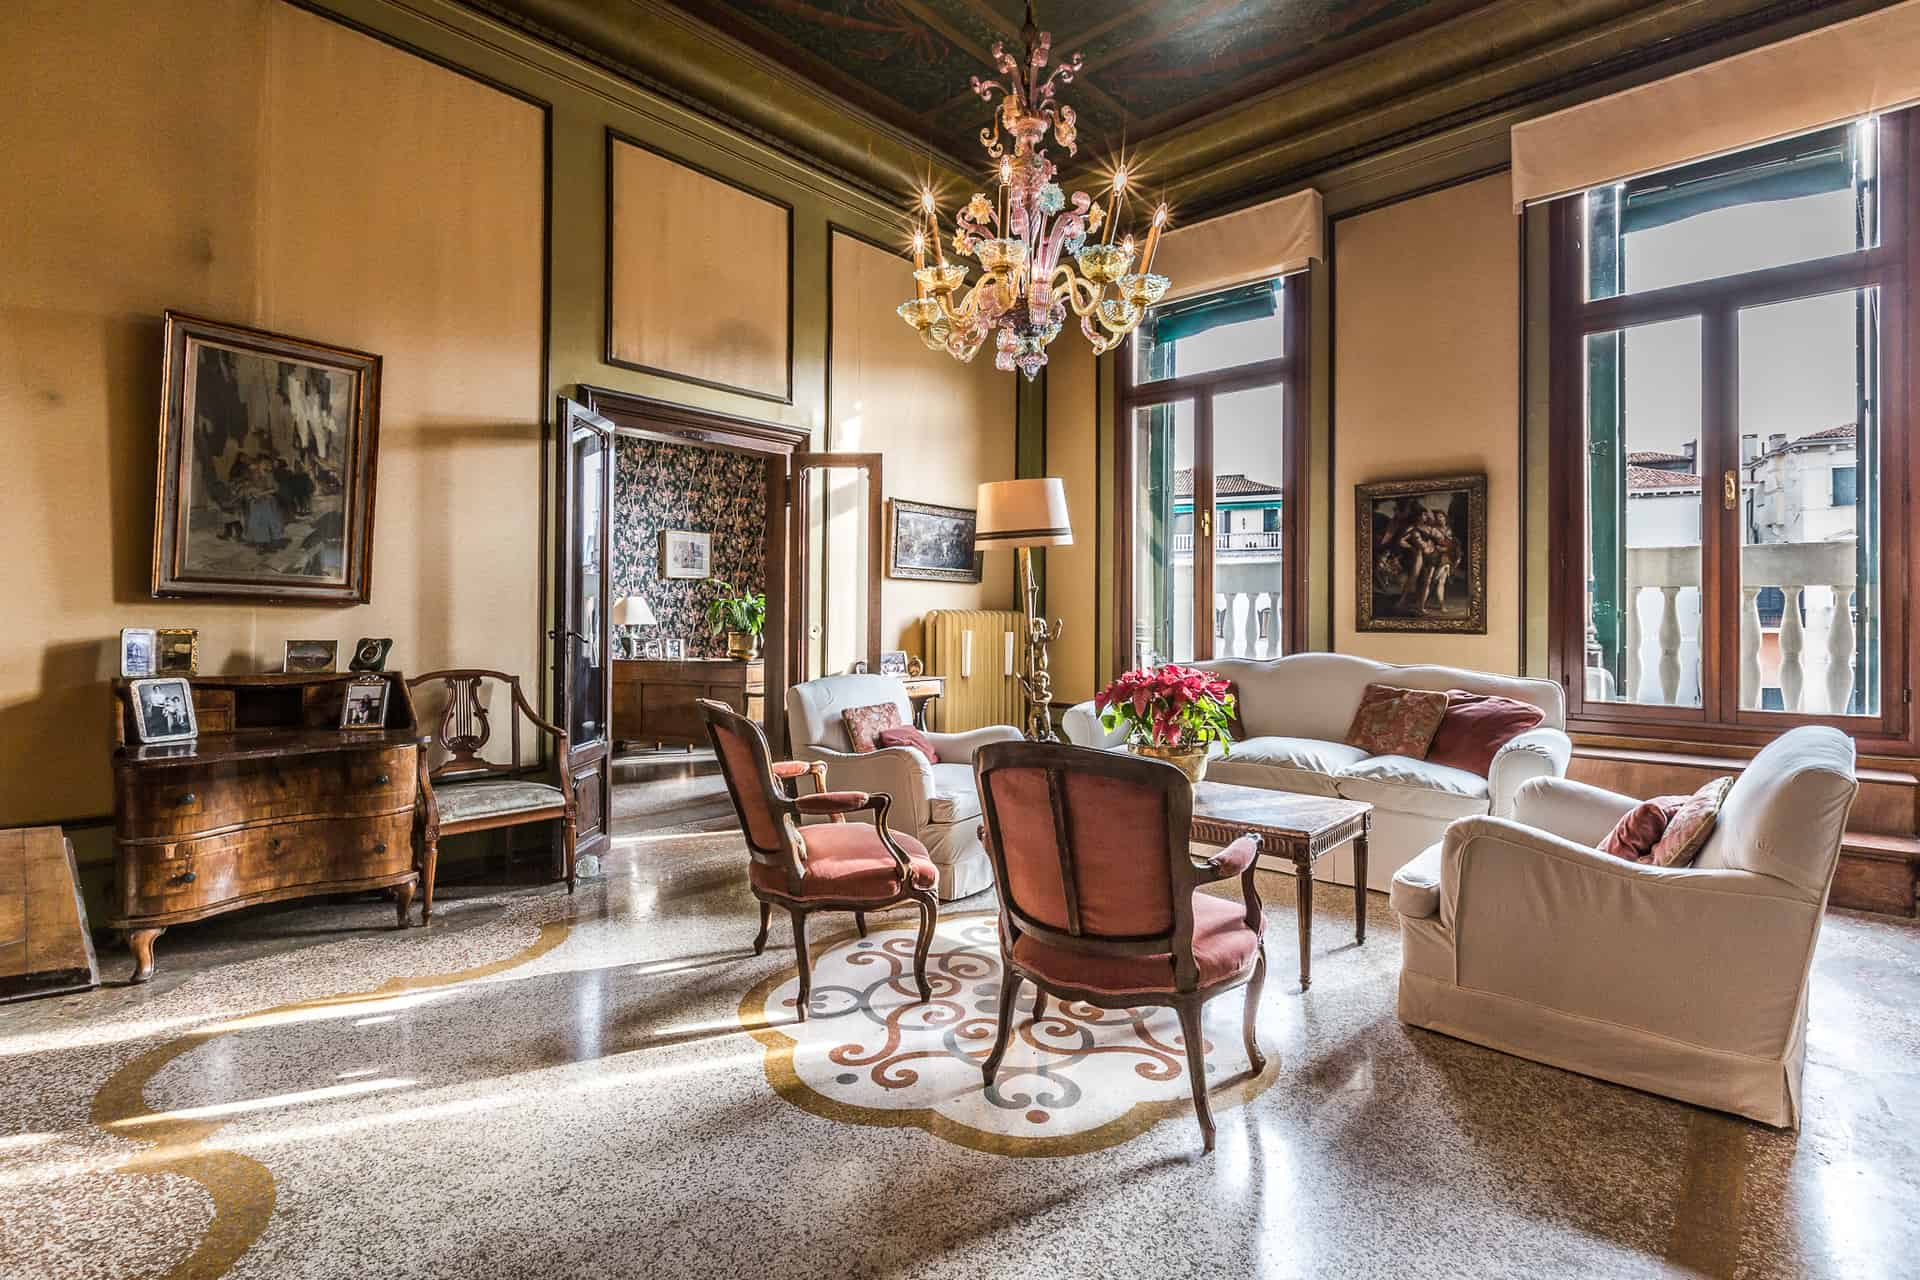 Left view of the luminous small living room with antique Venetian furnishing - Ca' Affresco 2 Apartment